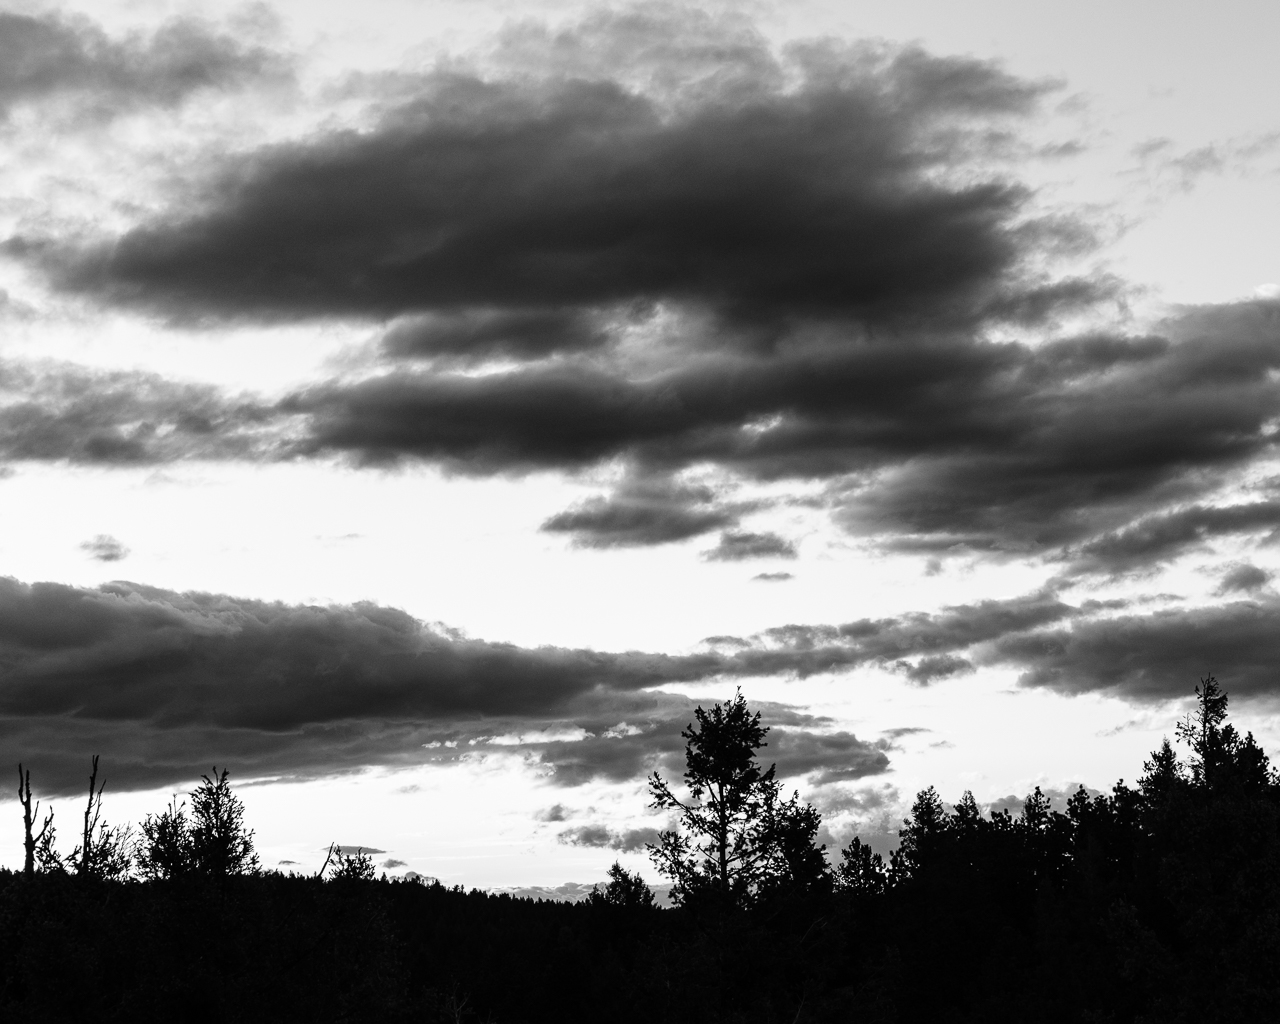 Day 194 - 365 Day B&W Photo Challenge - Storm Clouds hovering at Sunset.  -  Fuji X-T3, XF 35mm f/2, Acros R Film Simulation